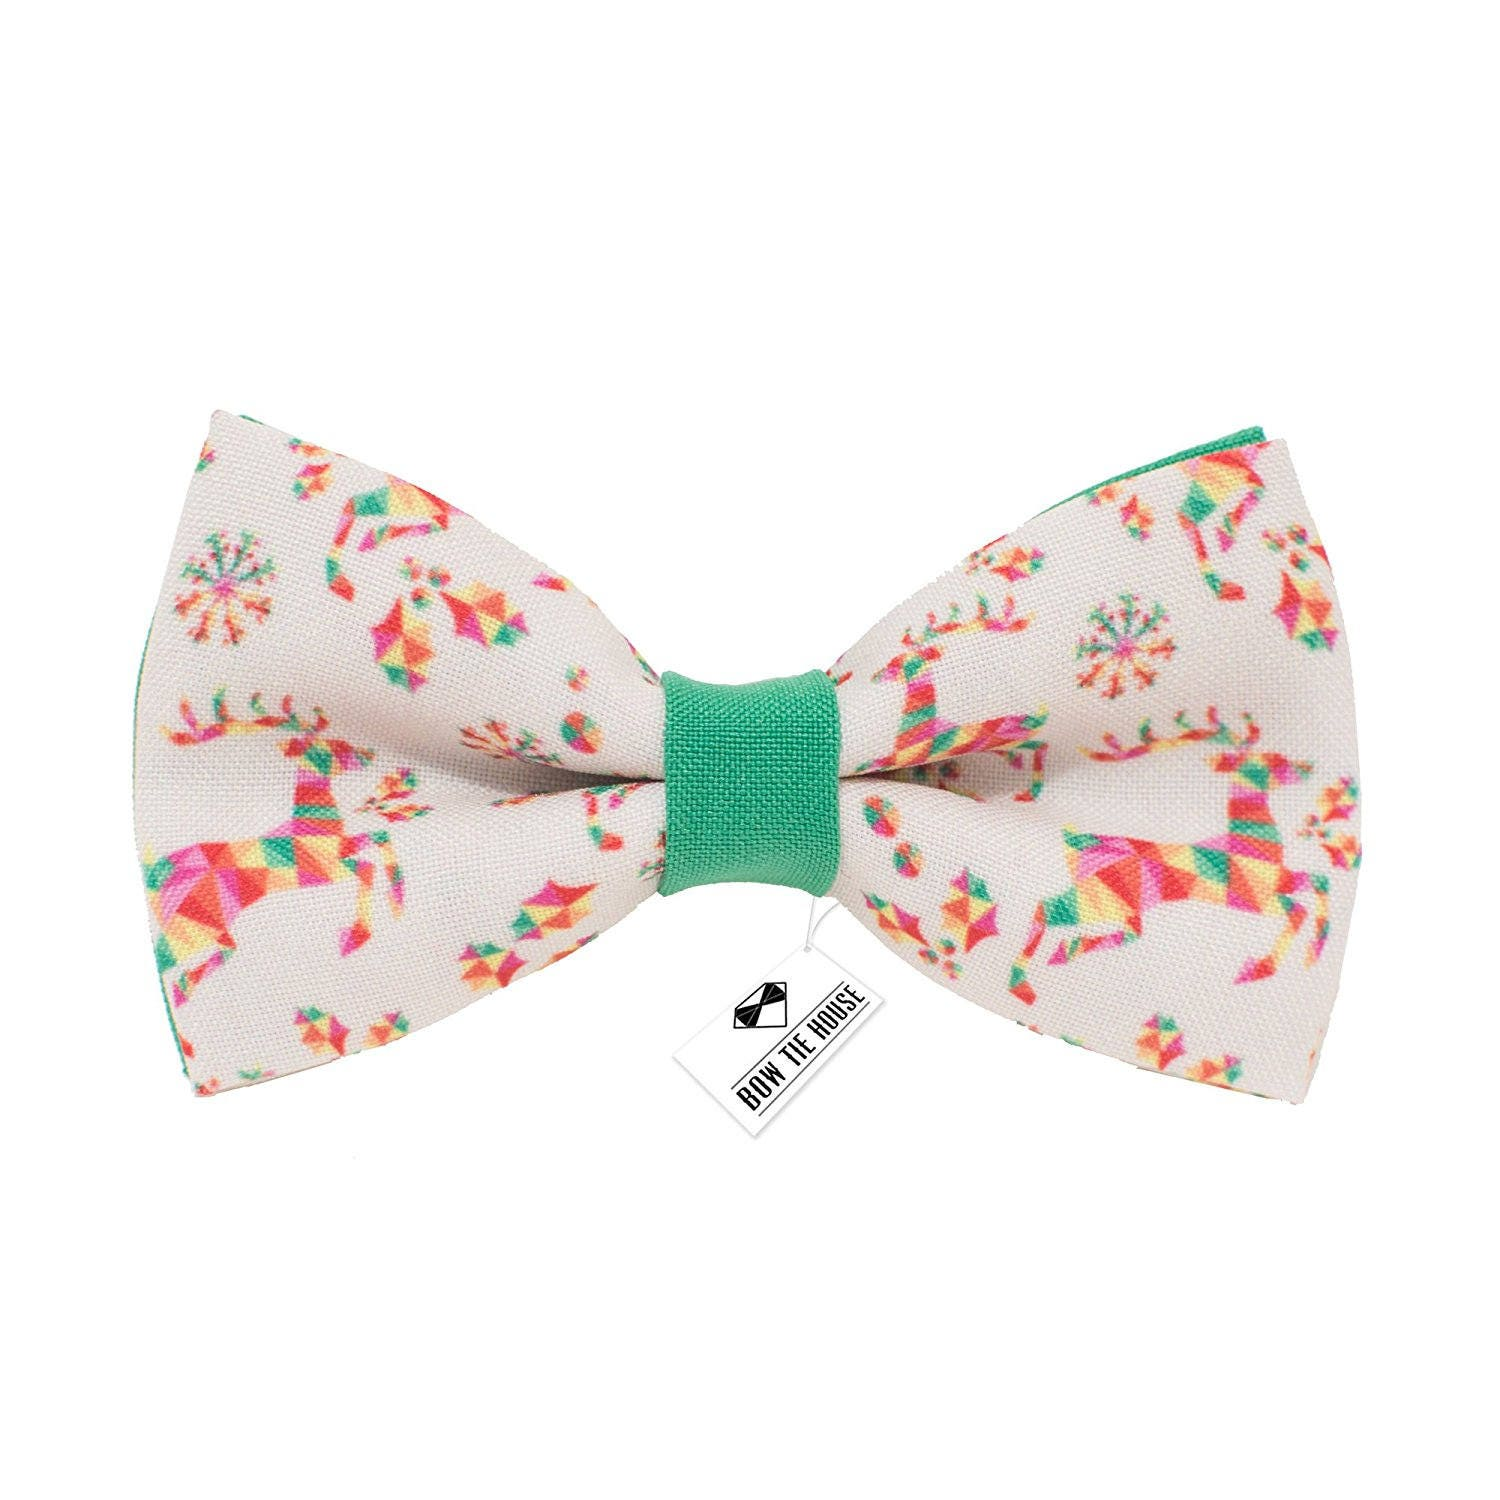 e9a2235eb287 Bow Tie House Bright Deer bow tie green color Christmas | Etsy